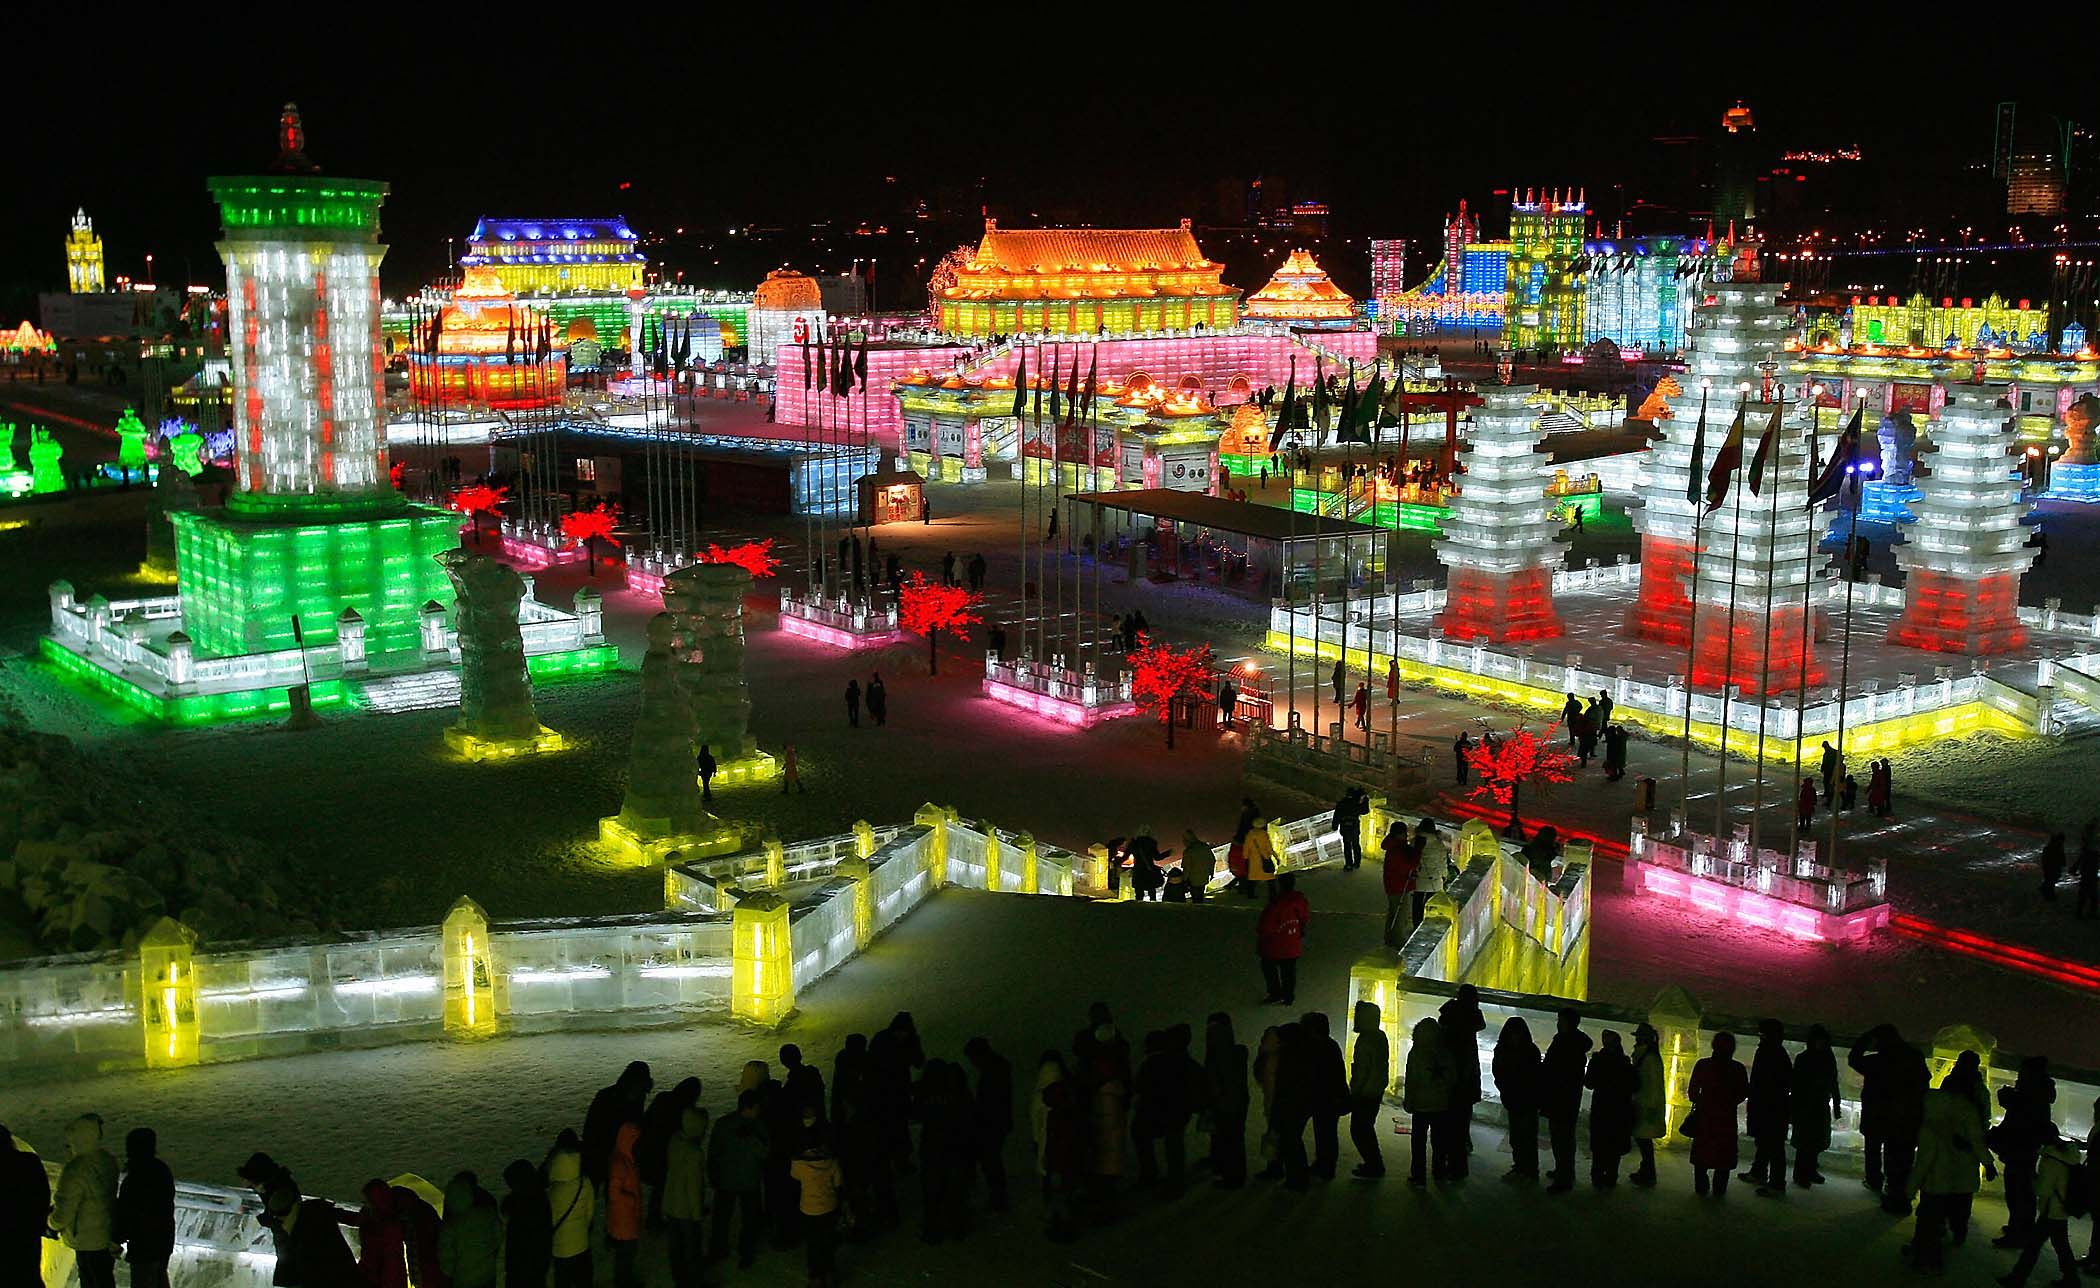 Harbin, China.  Winter Ice Festival.  They do this every year in Harbin.  I should have gone when I lived in China for two years.